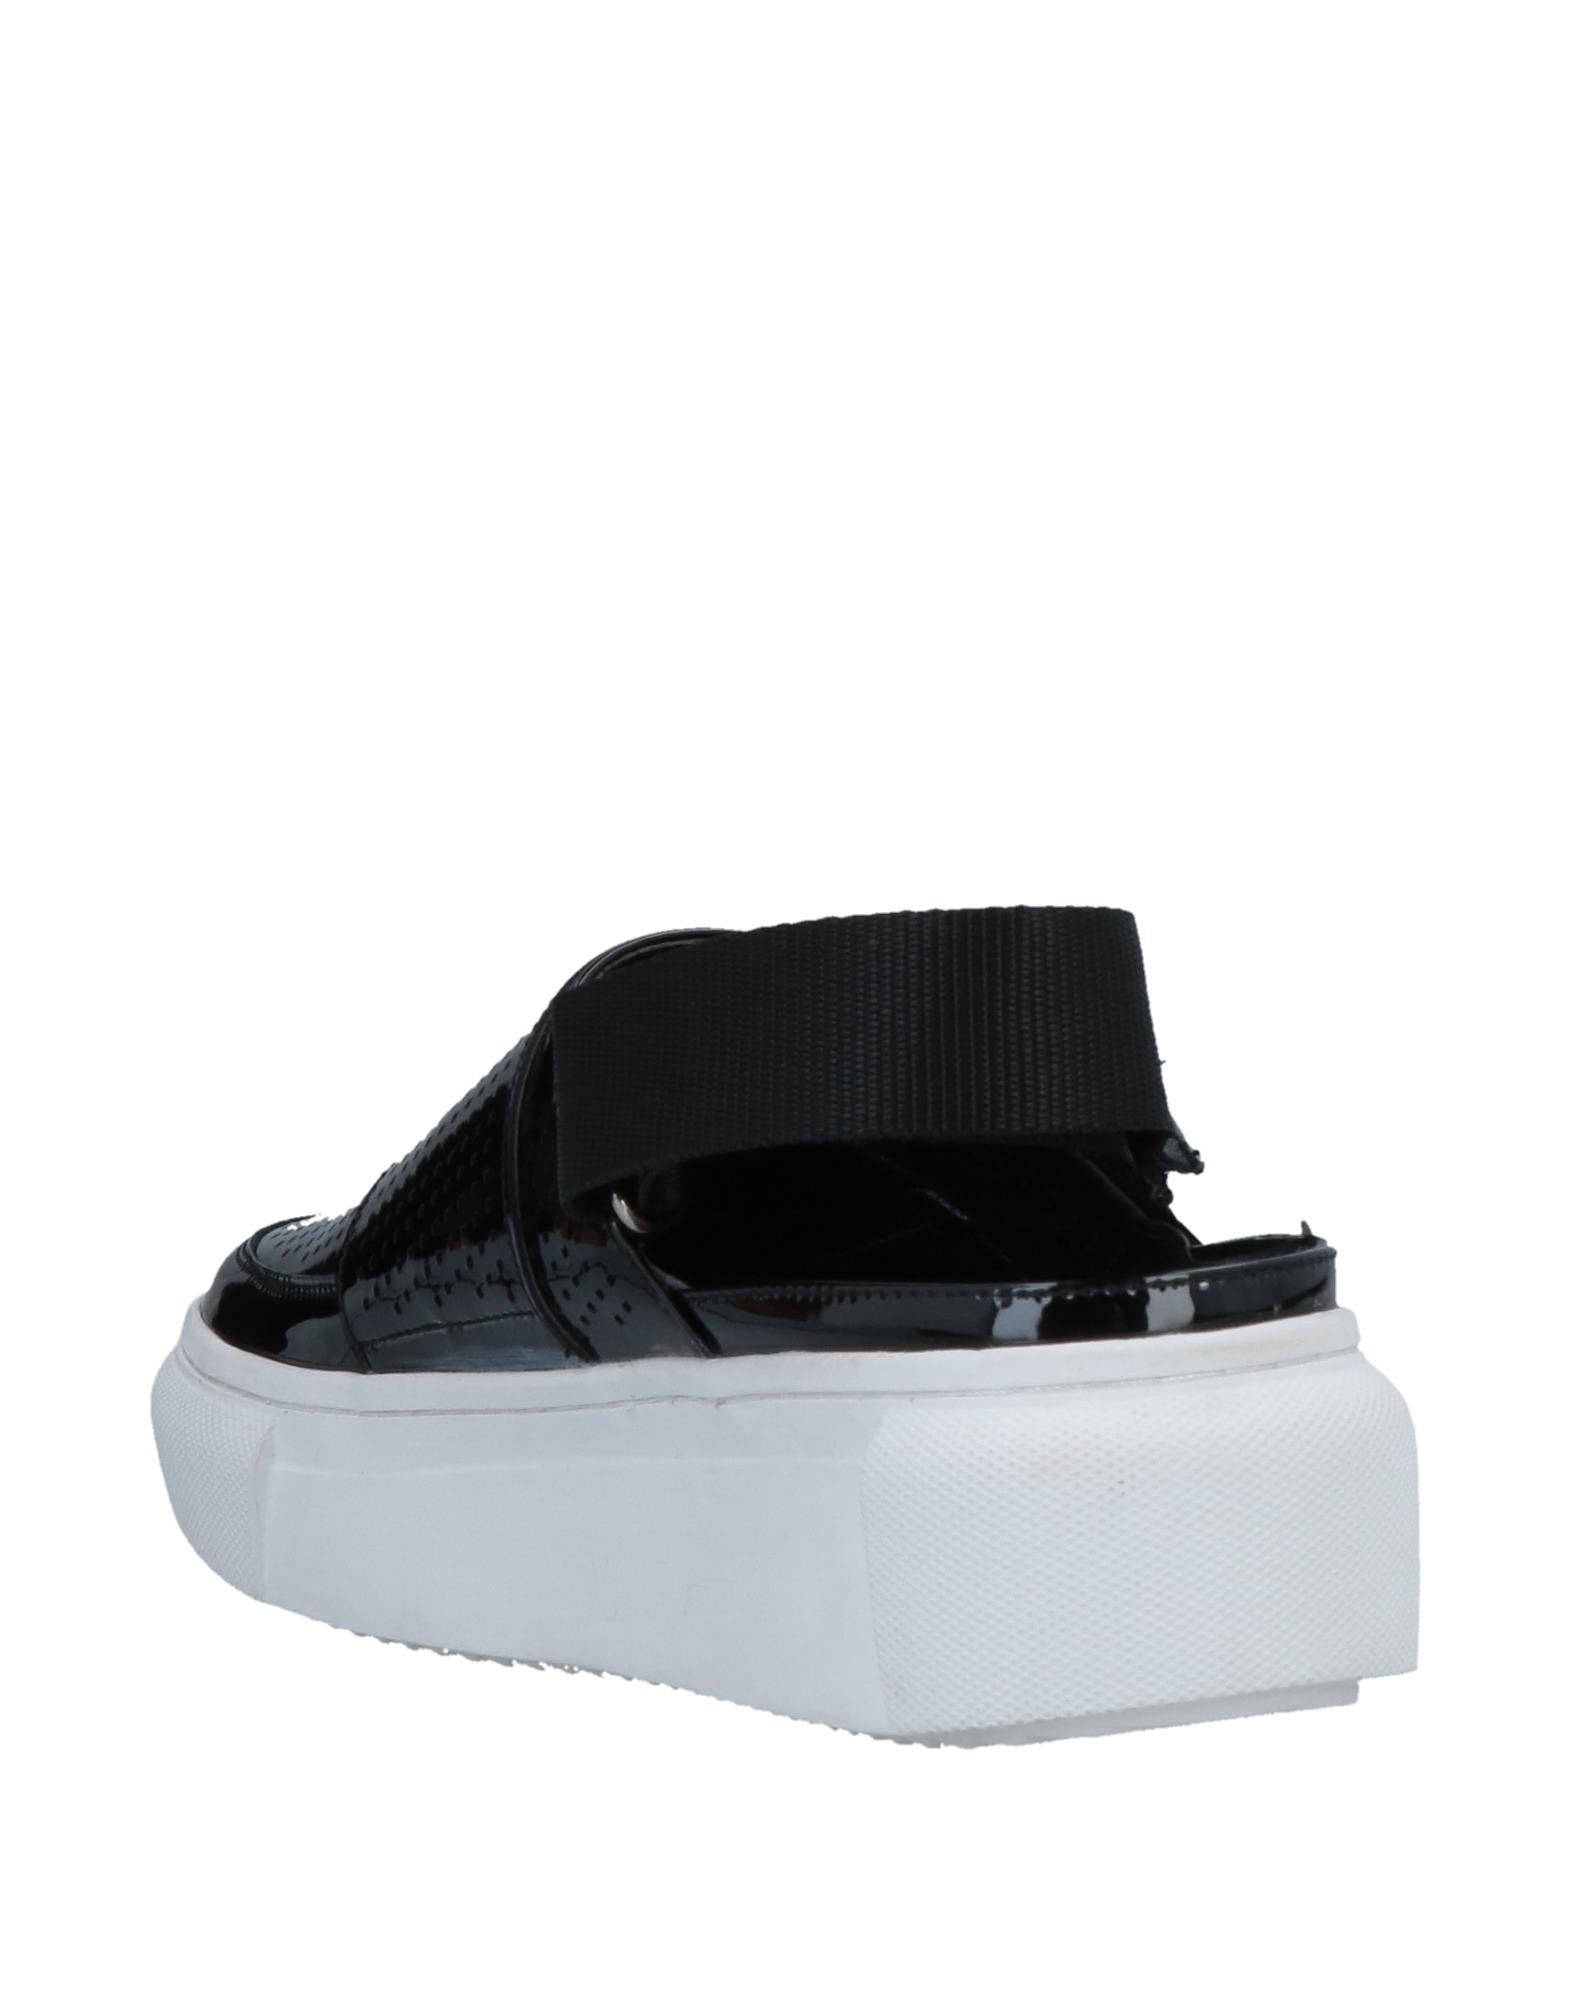 Dbyd X Yoox Slippers - Men Dbyd Dbyd Dbyd X Yoox Slippers online on  Australia - 11505132LE 97188c